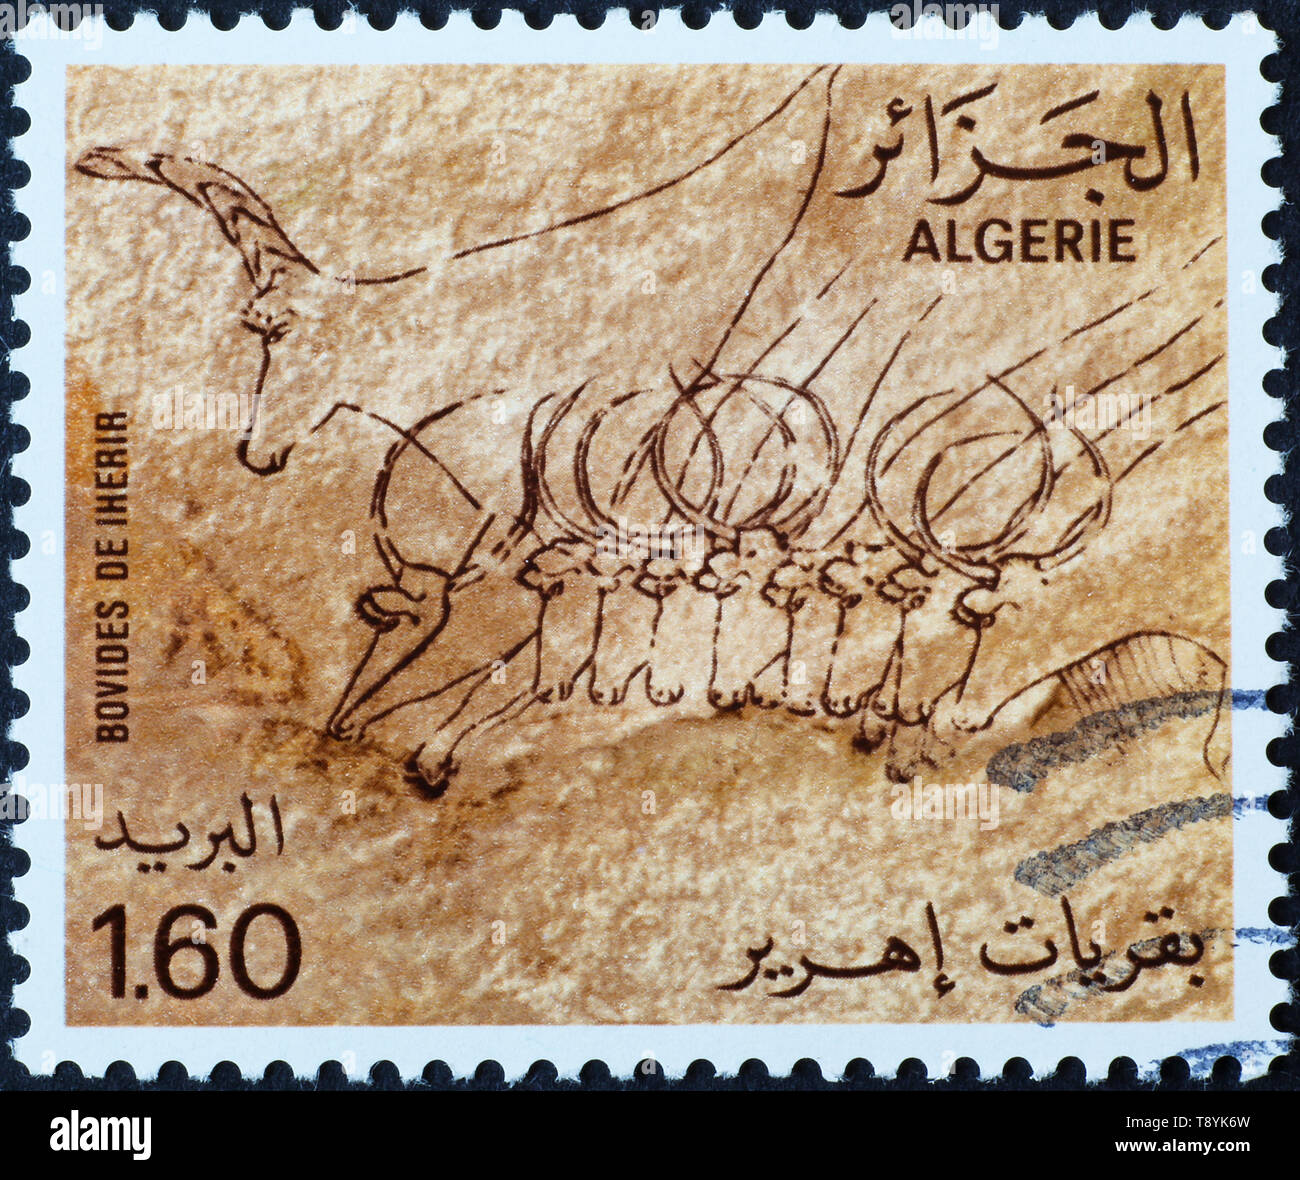 Prehistoric depictions of antelopes on algerian postage stamp - Stock Image